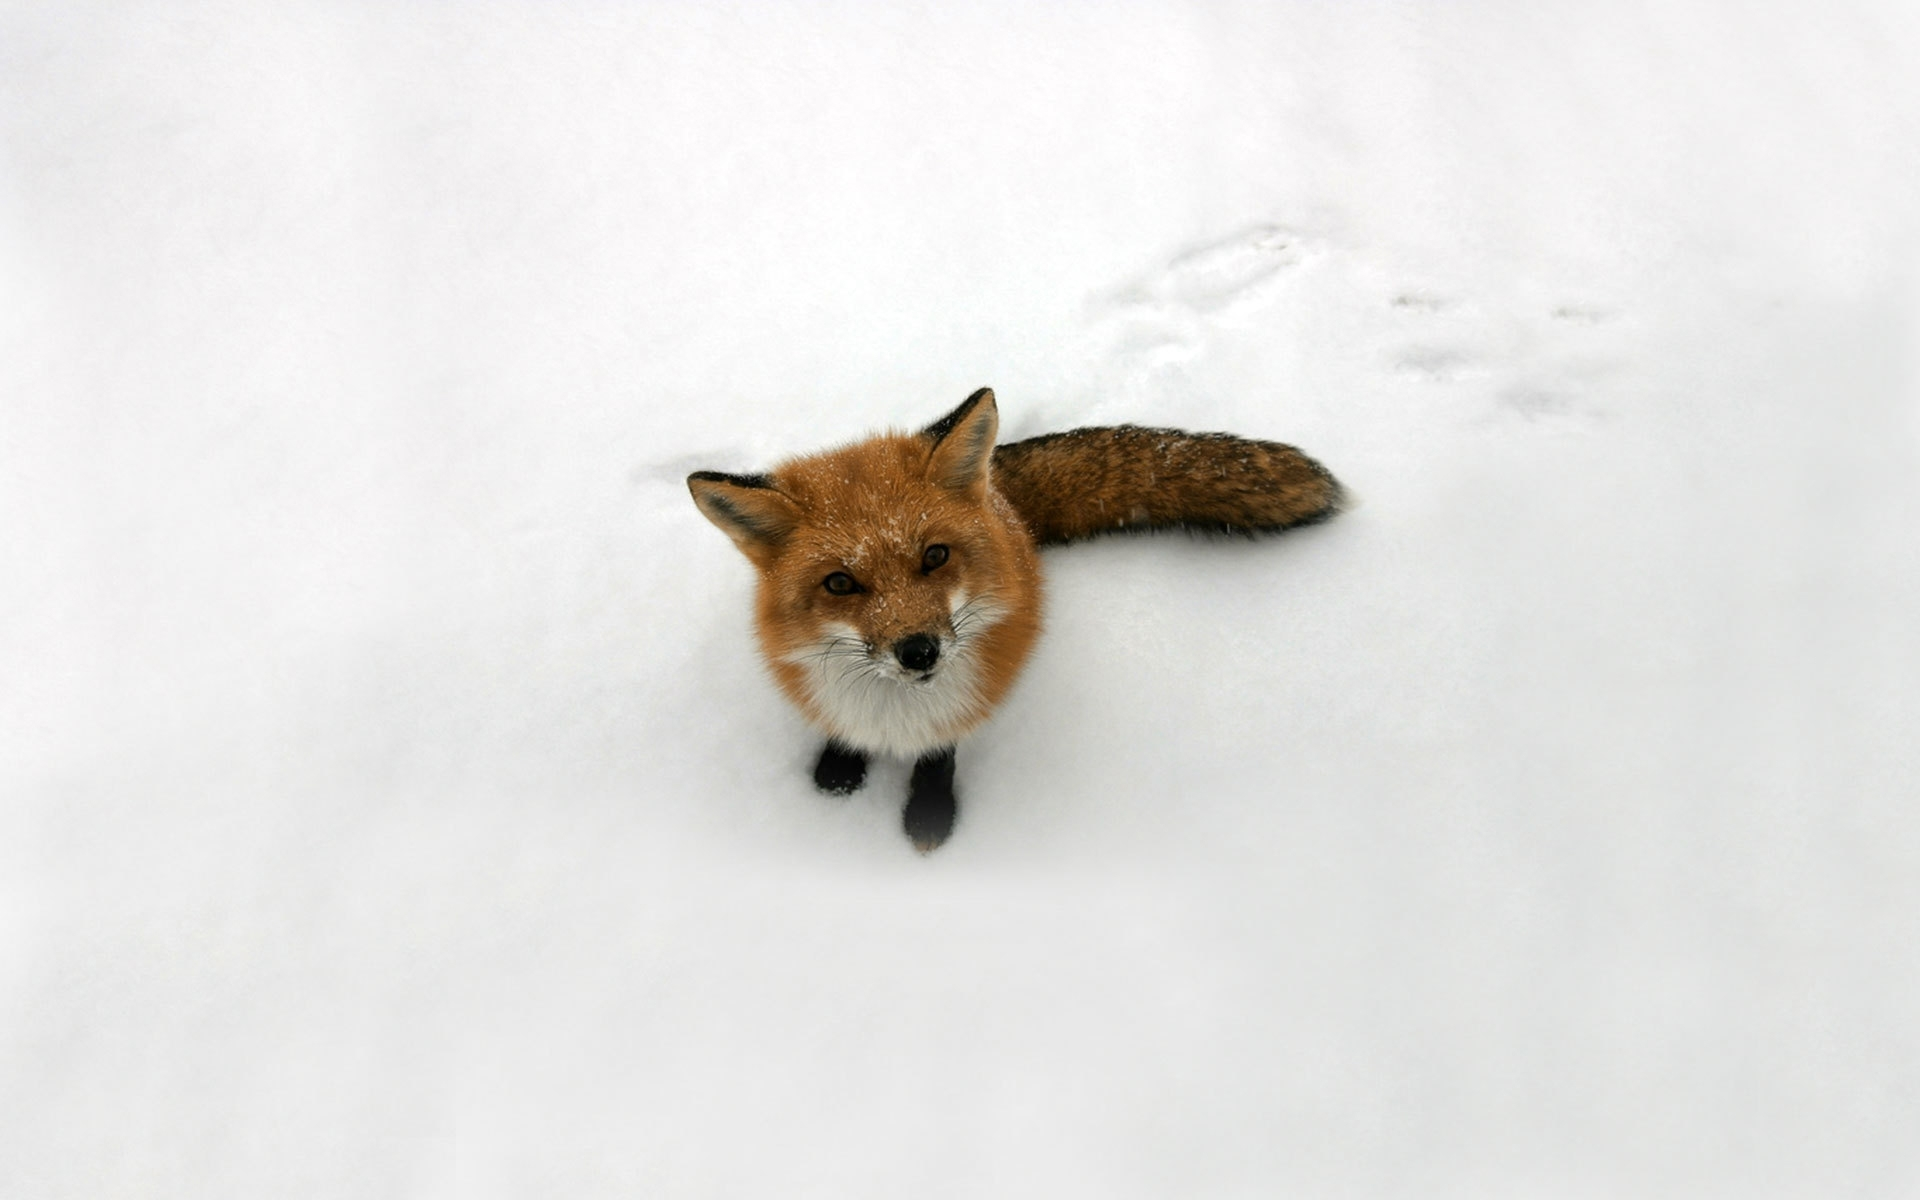 40478 download wallpaper Animals, Fox screensavers and pictures for free